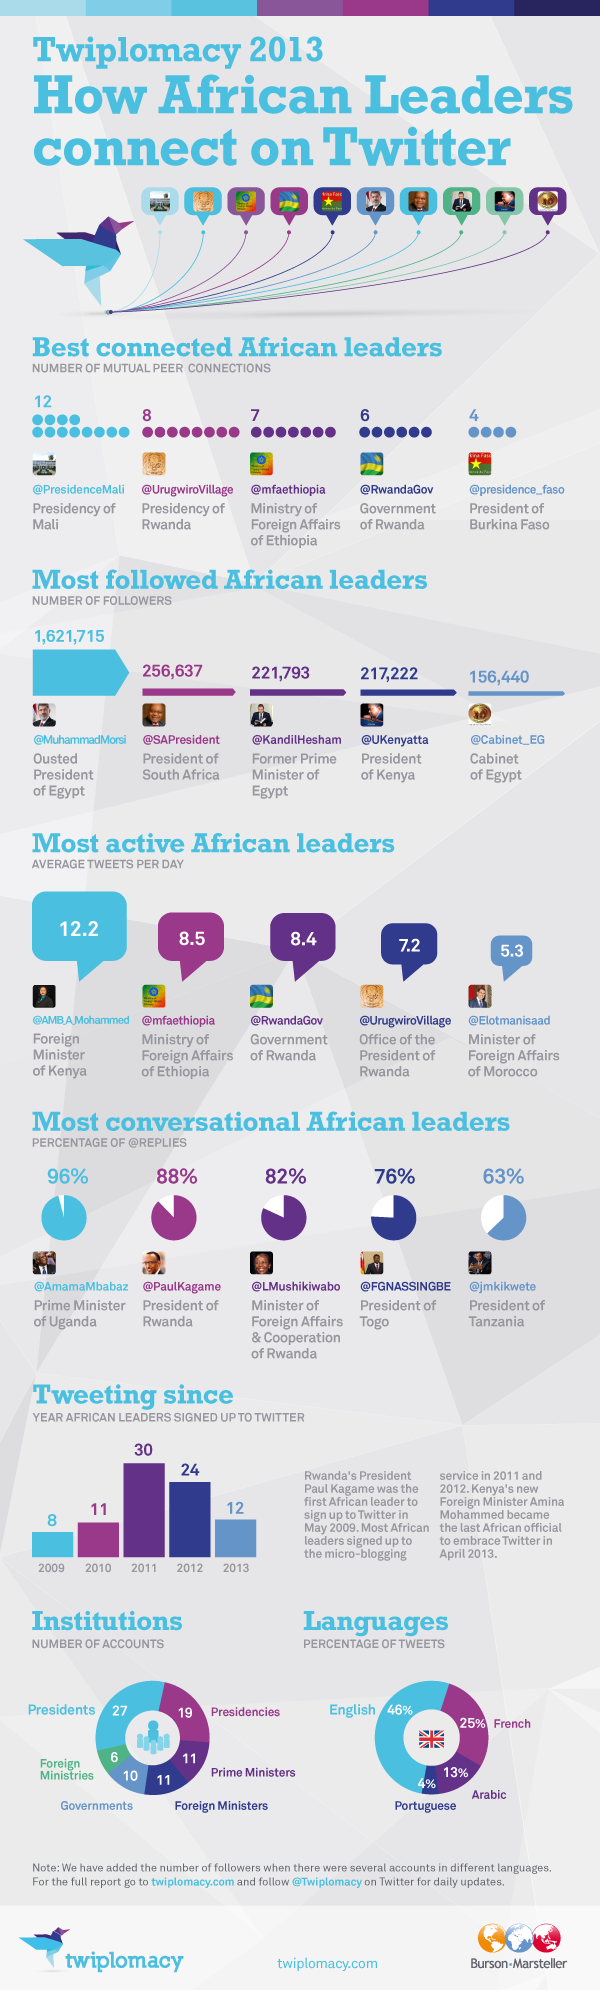 3. Who are the top African leaders on Twitter